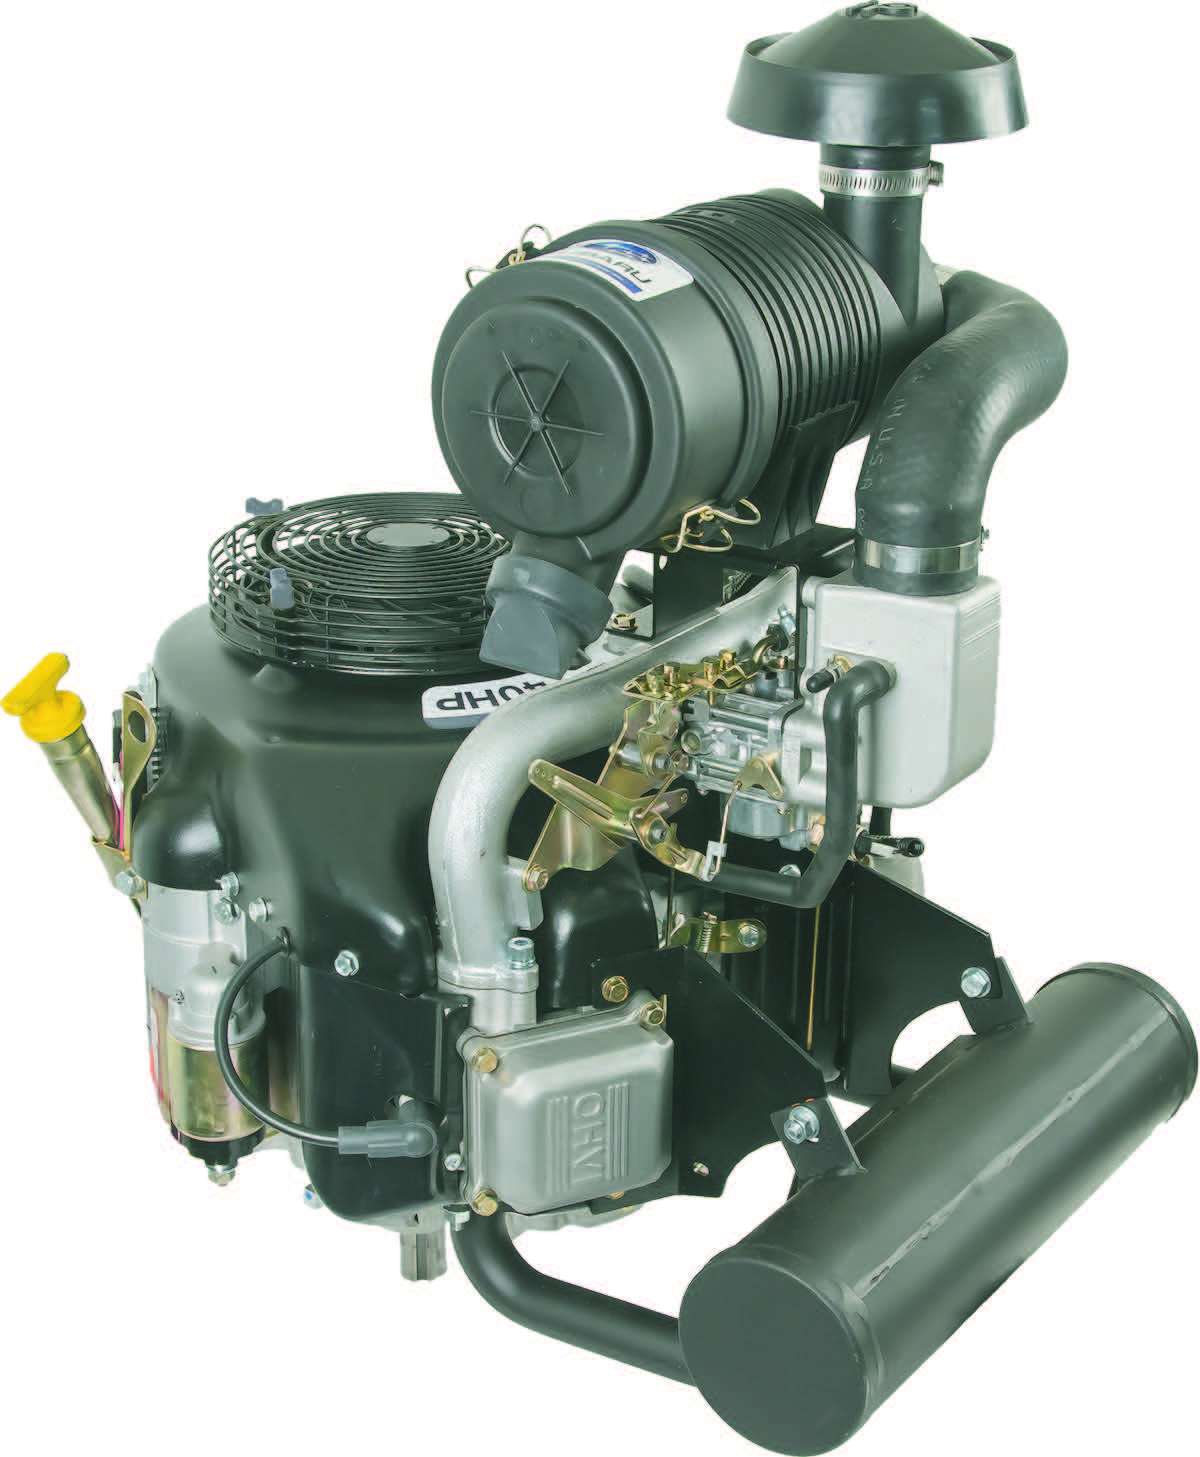 Subaru Eh99v Engine 1 Aztec Products